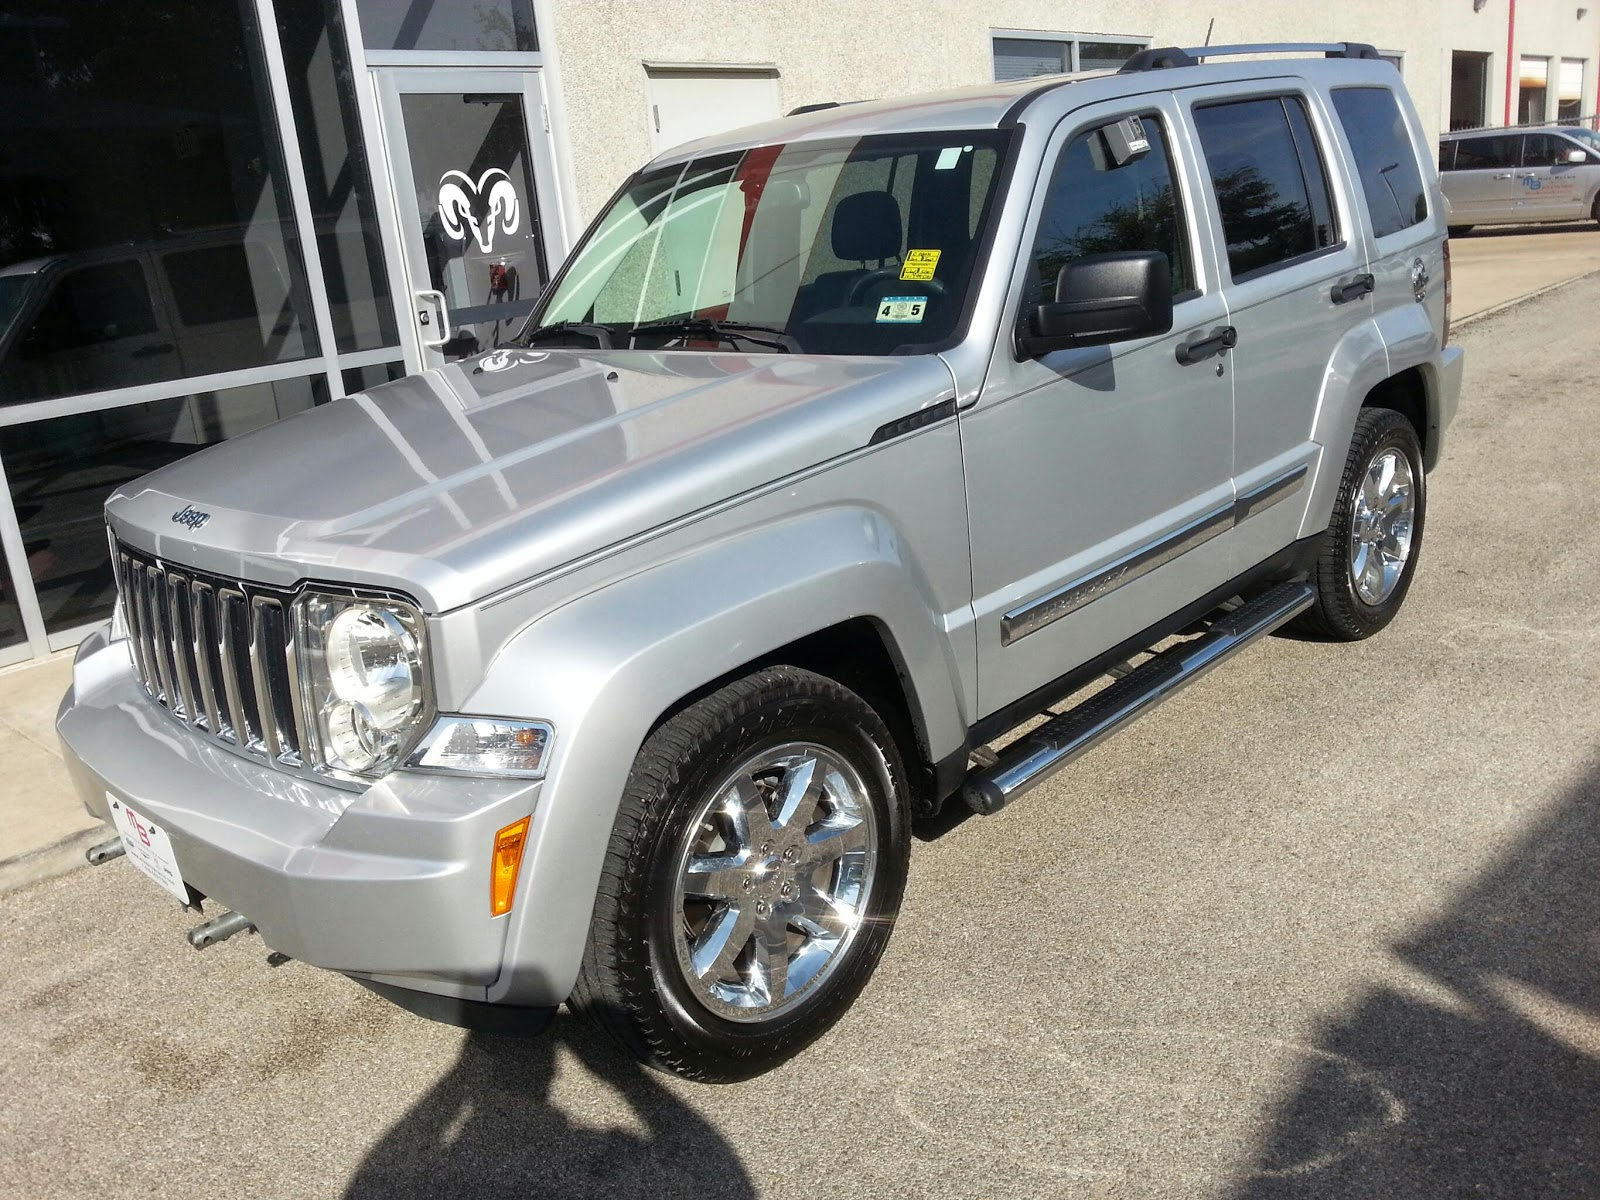 19 991 silver 2010 4wd jeep liberty limited edition 51k miles troy young 817 243 9840 tdy. Black Bedroom Furniture Sets. Home Design Ideas